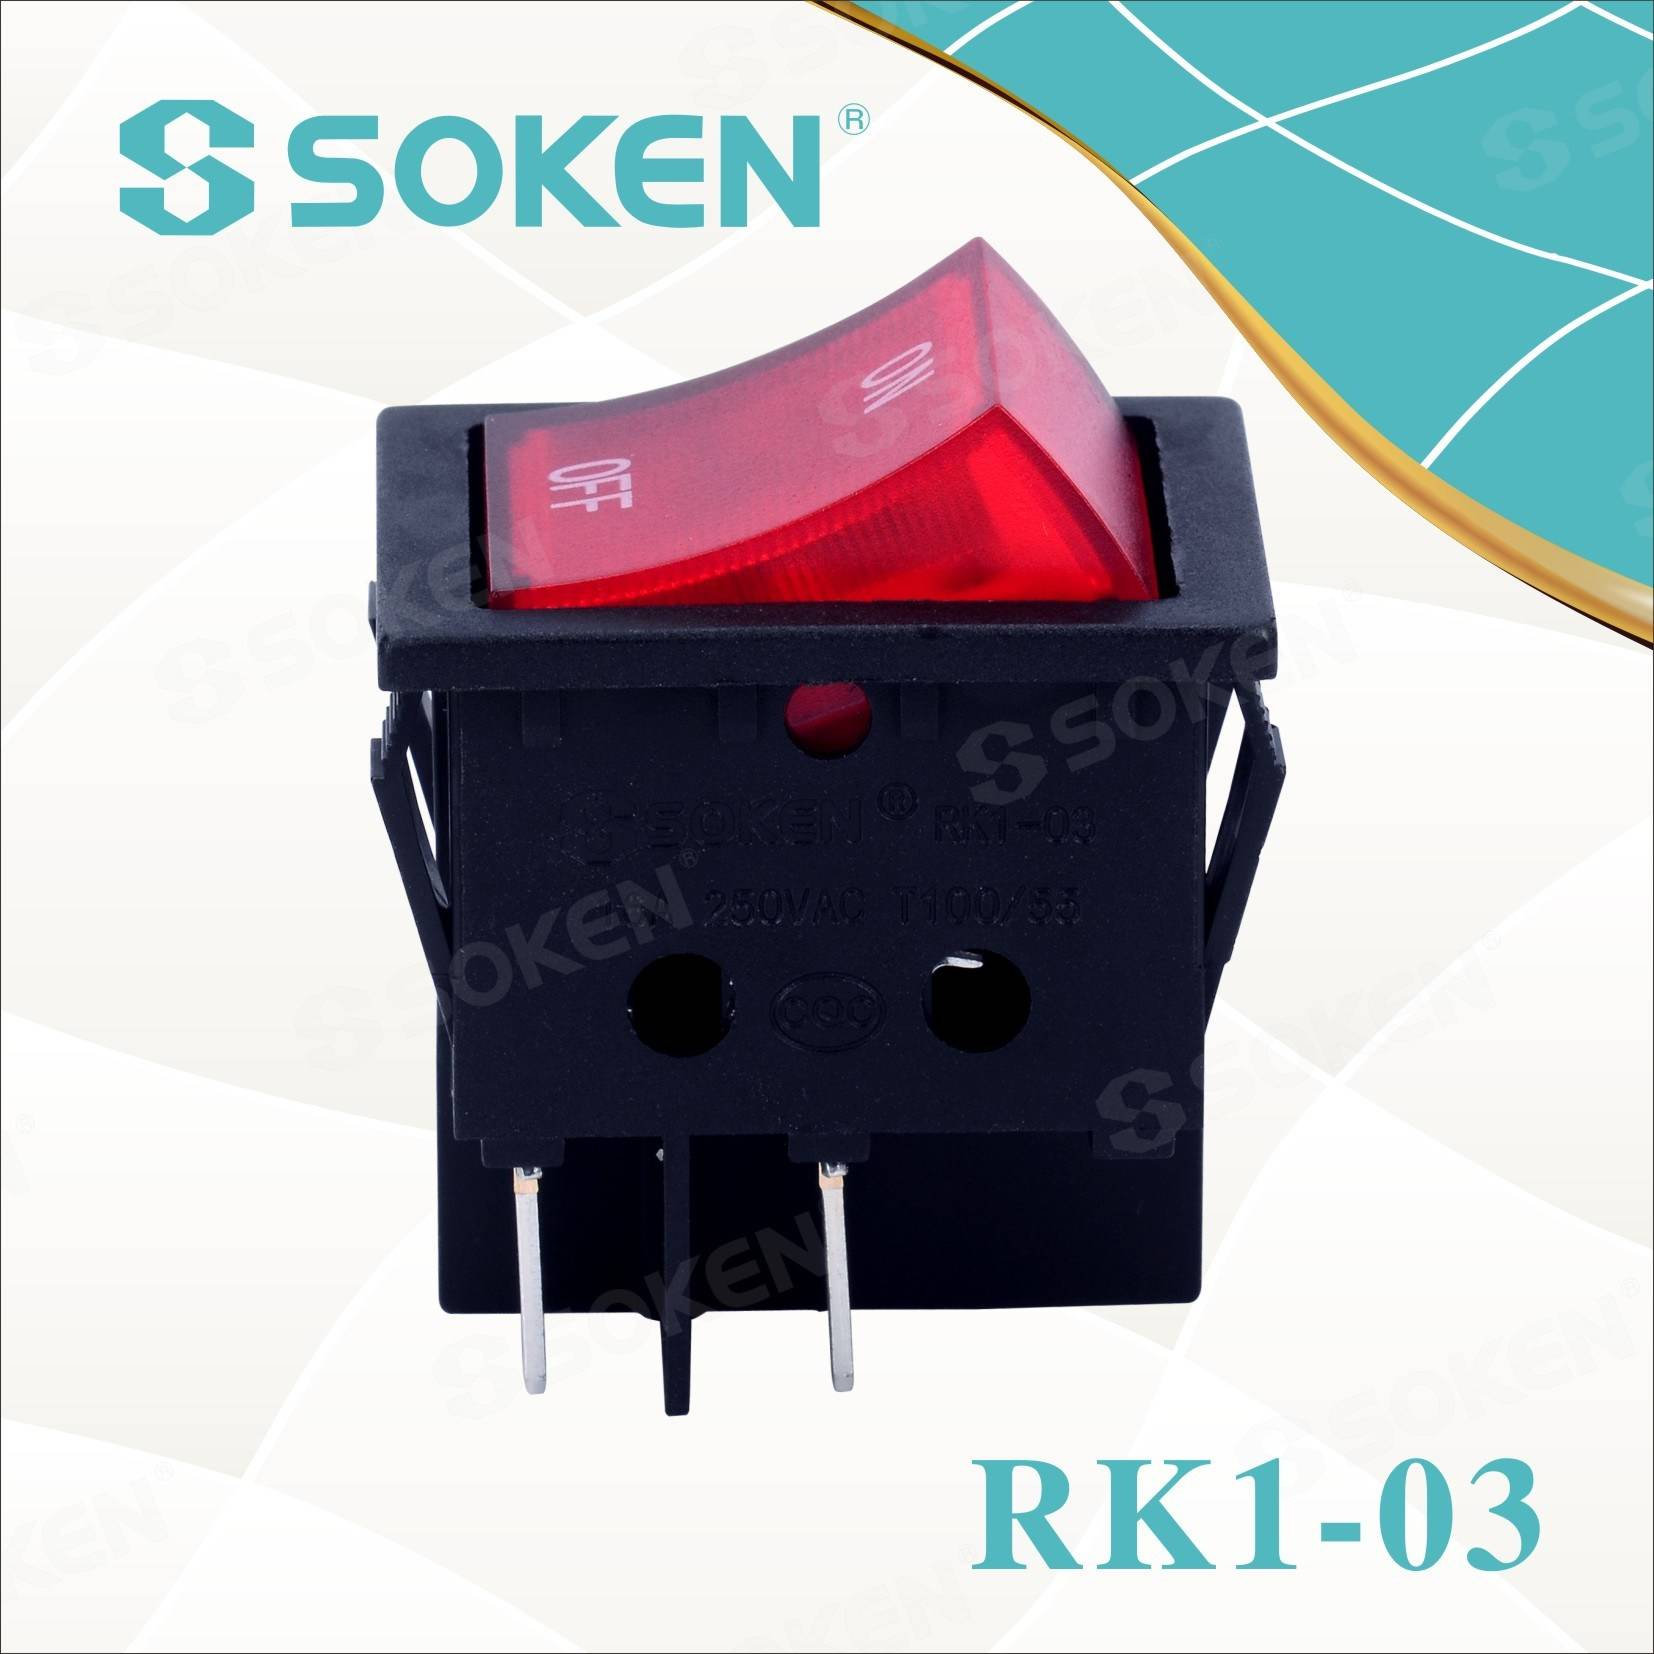 Quoted price for Laser Etched Rocker Switches -